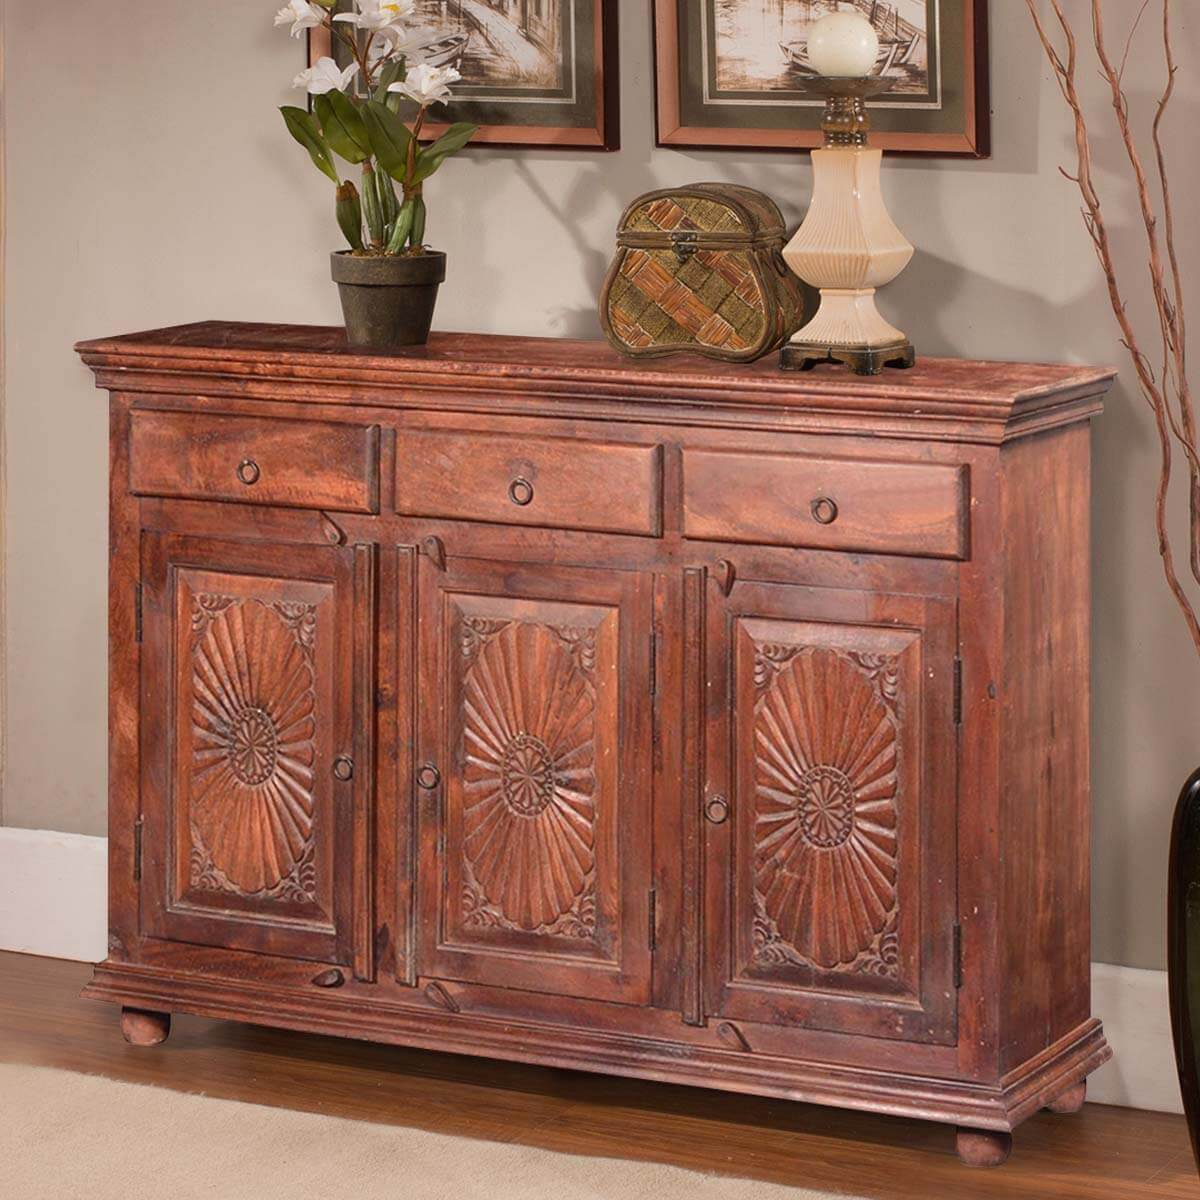 Traditional Sunburst Reclaimed Wood Buffet Sideboard Cabinet